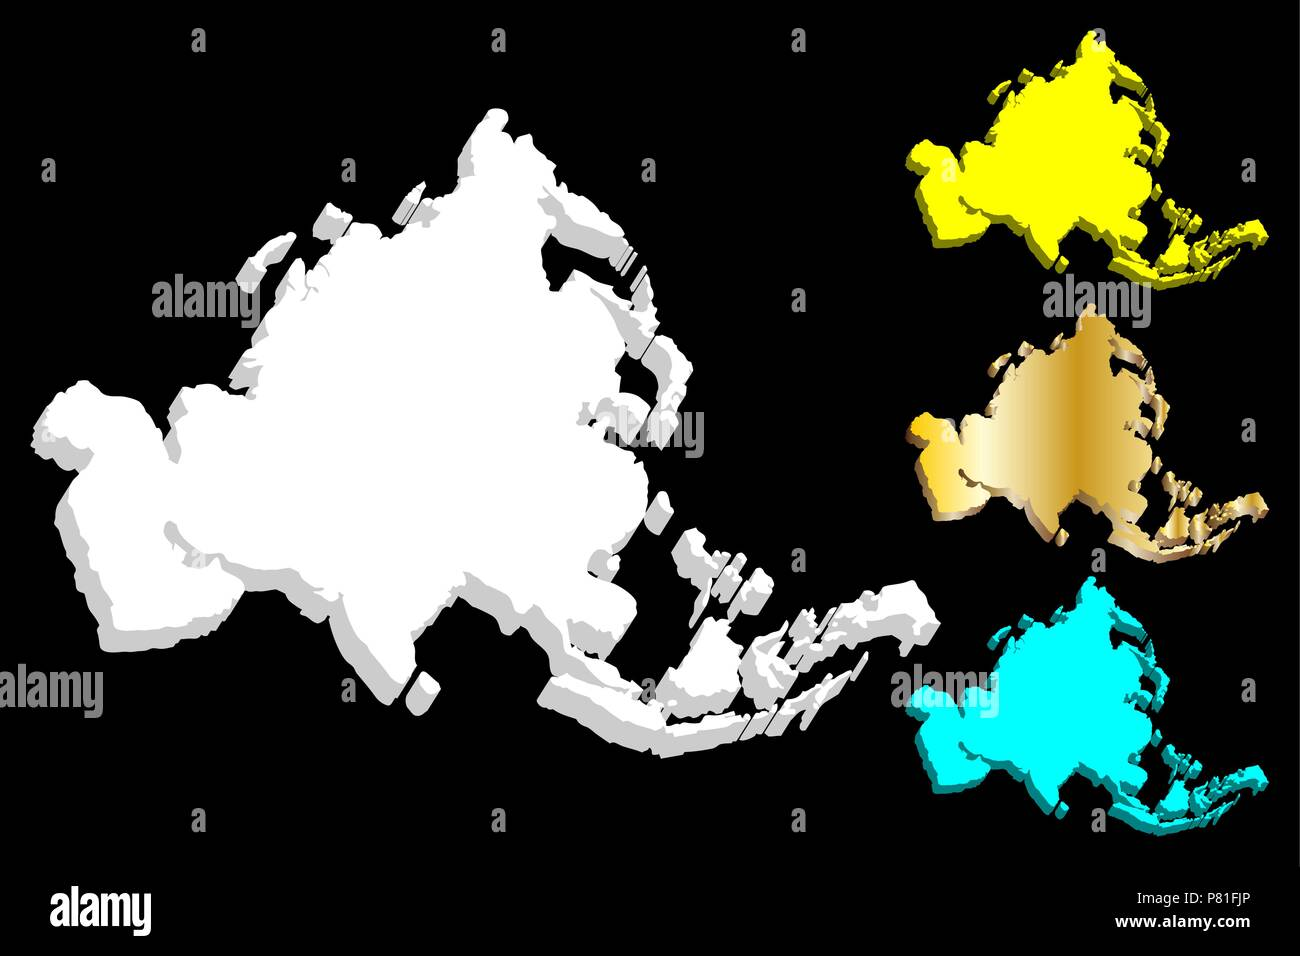 3D map of Asia continent - white, gold, blue and yellow - vector illustration - Stock Vector